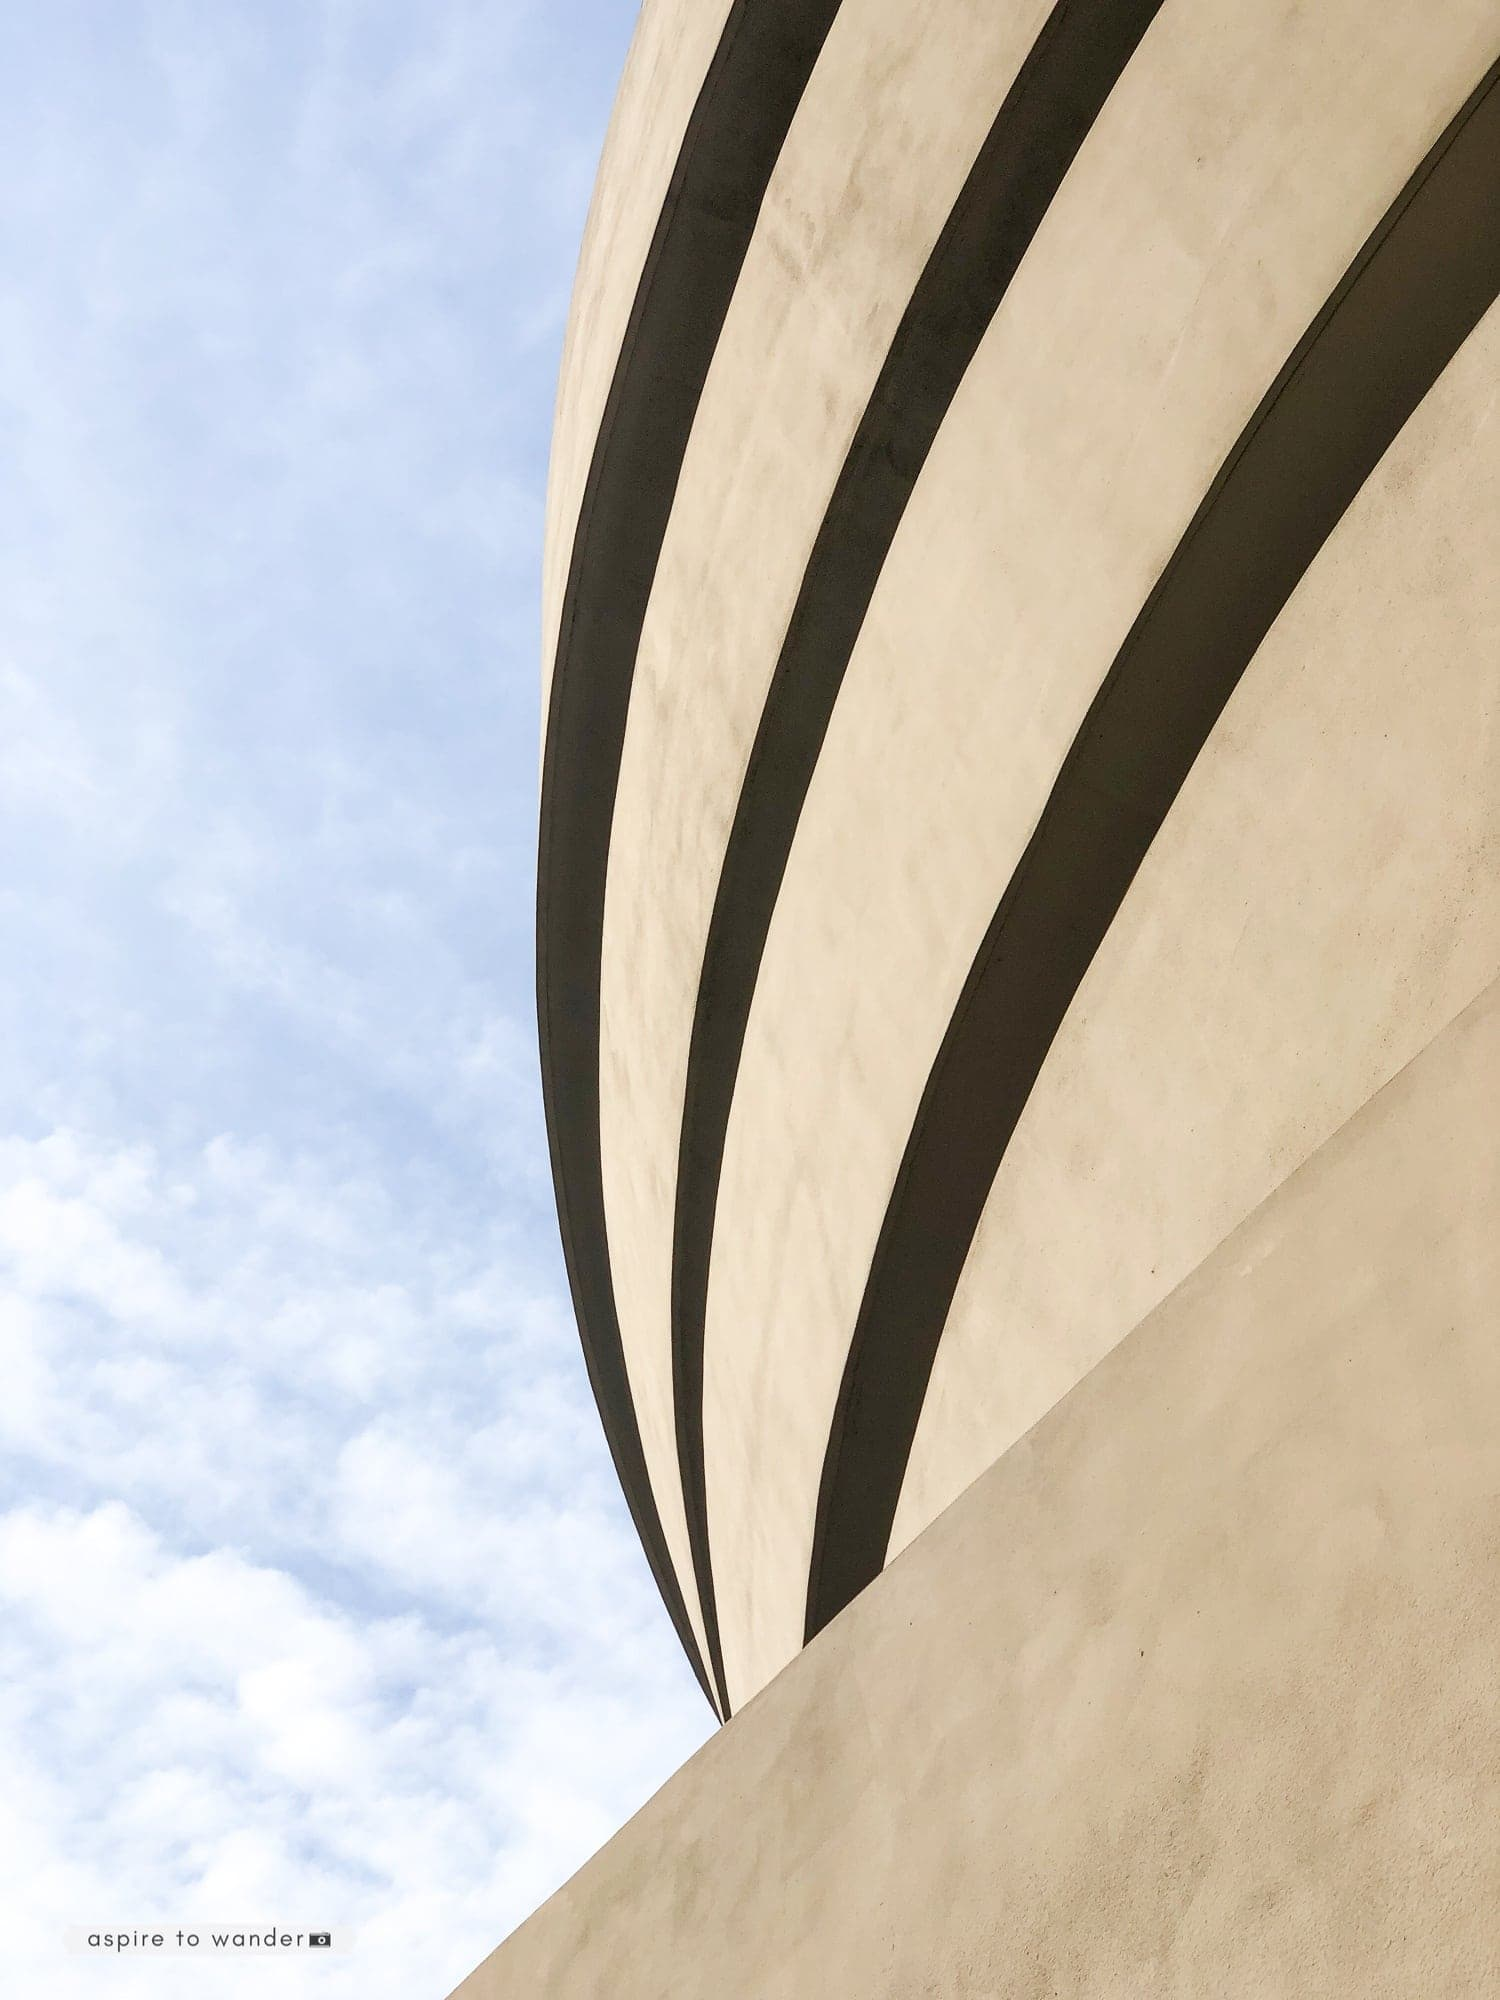 Solomon R. Guggenheim Museum - New York City